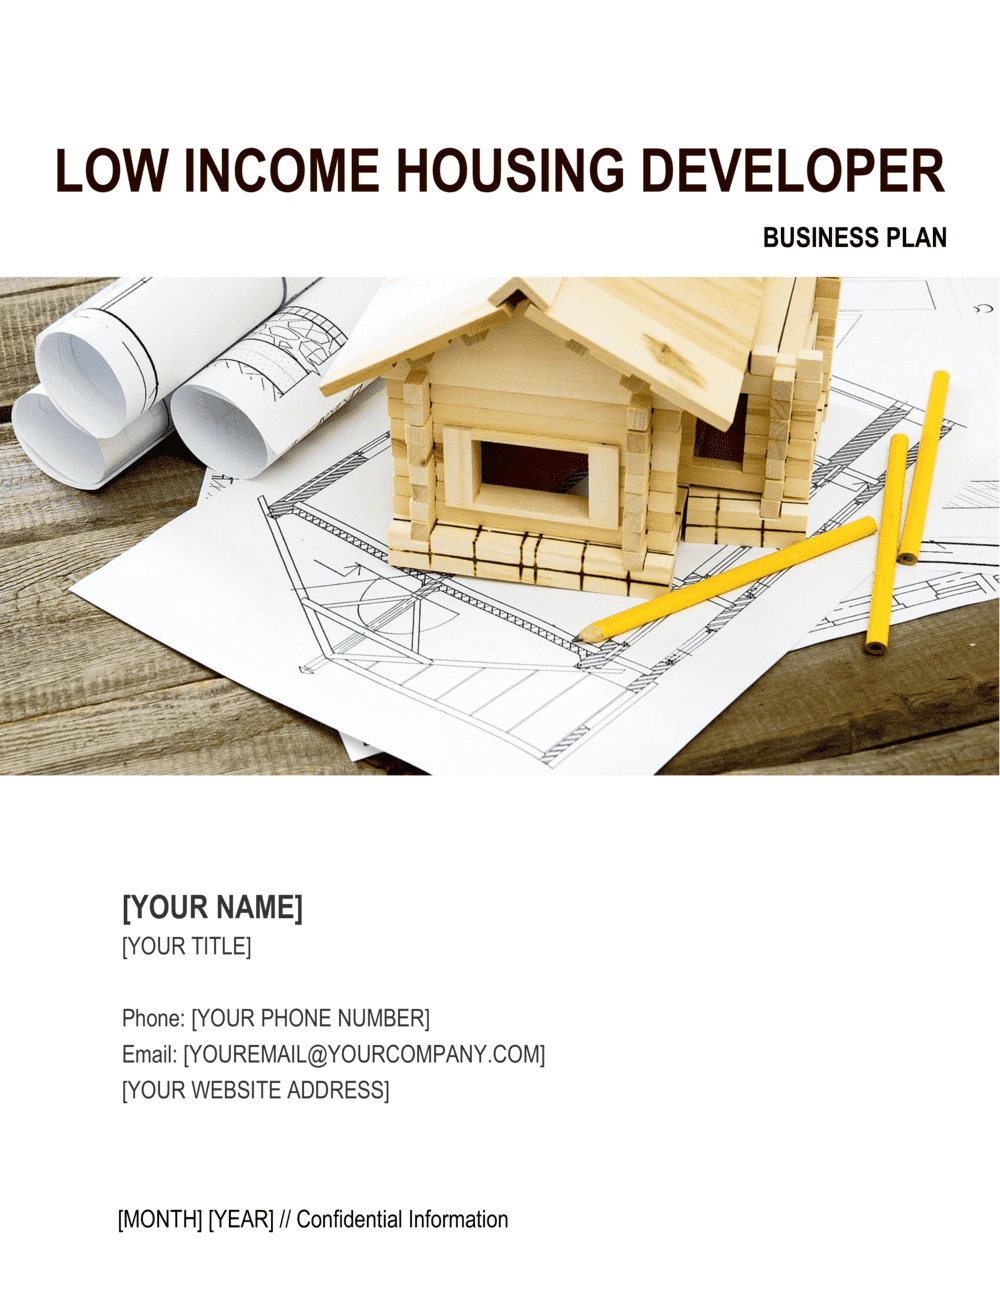 Business-in-a-Box's Low Income Housing Developer Business Plan Template